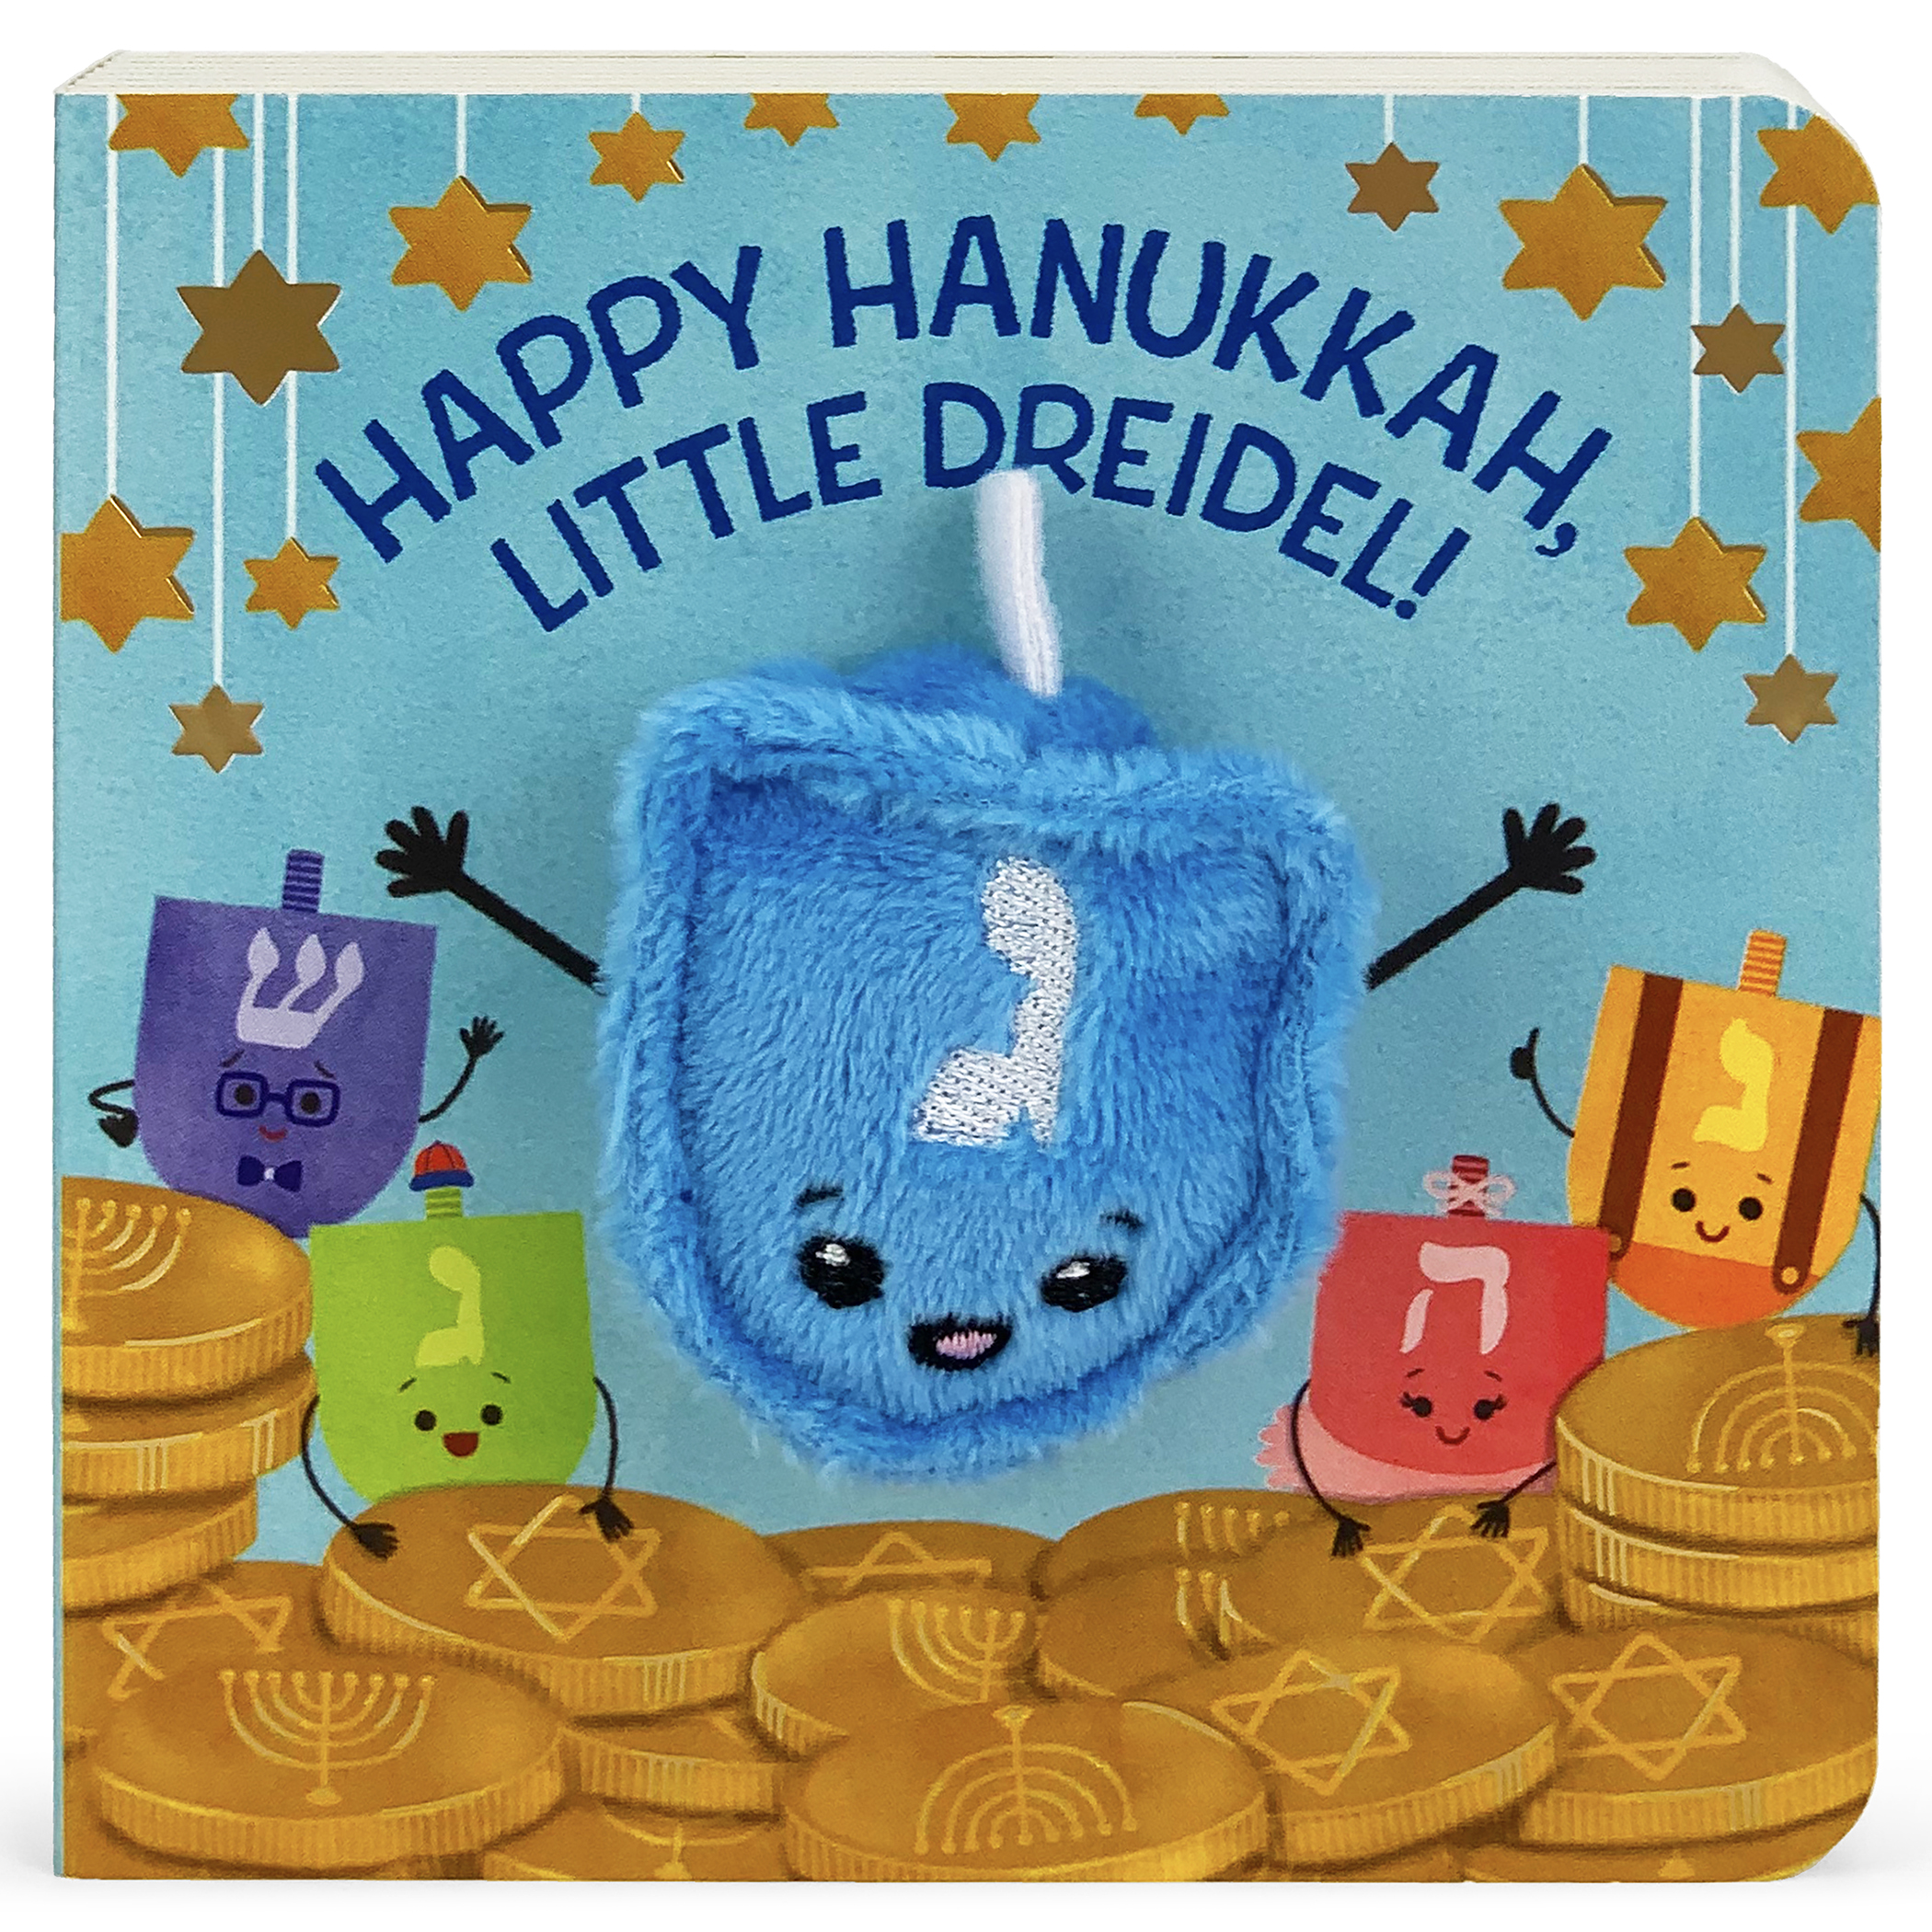 Happy Hanukkah, Little Dreidel